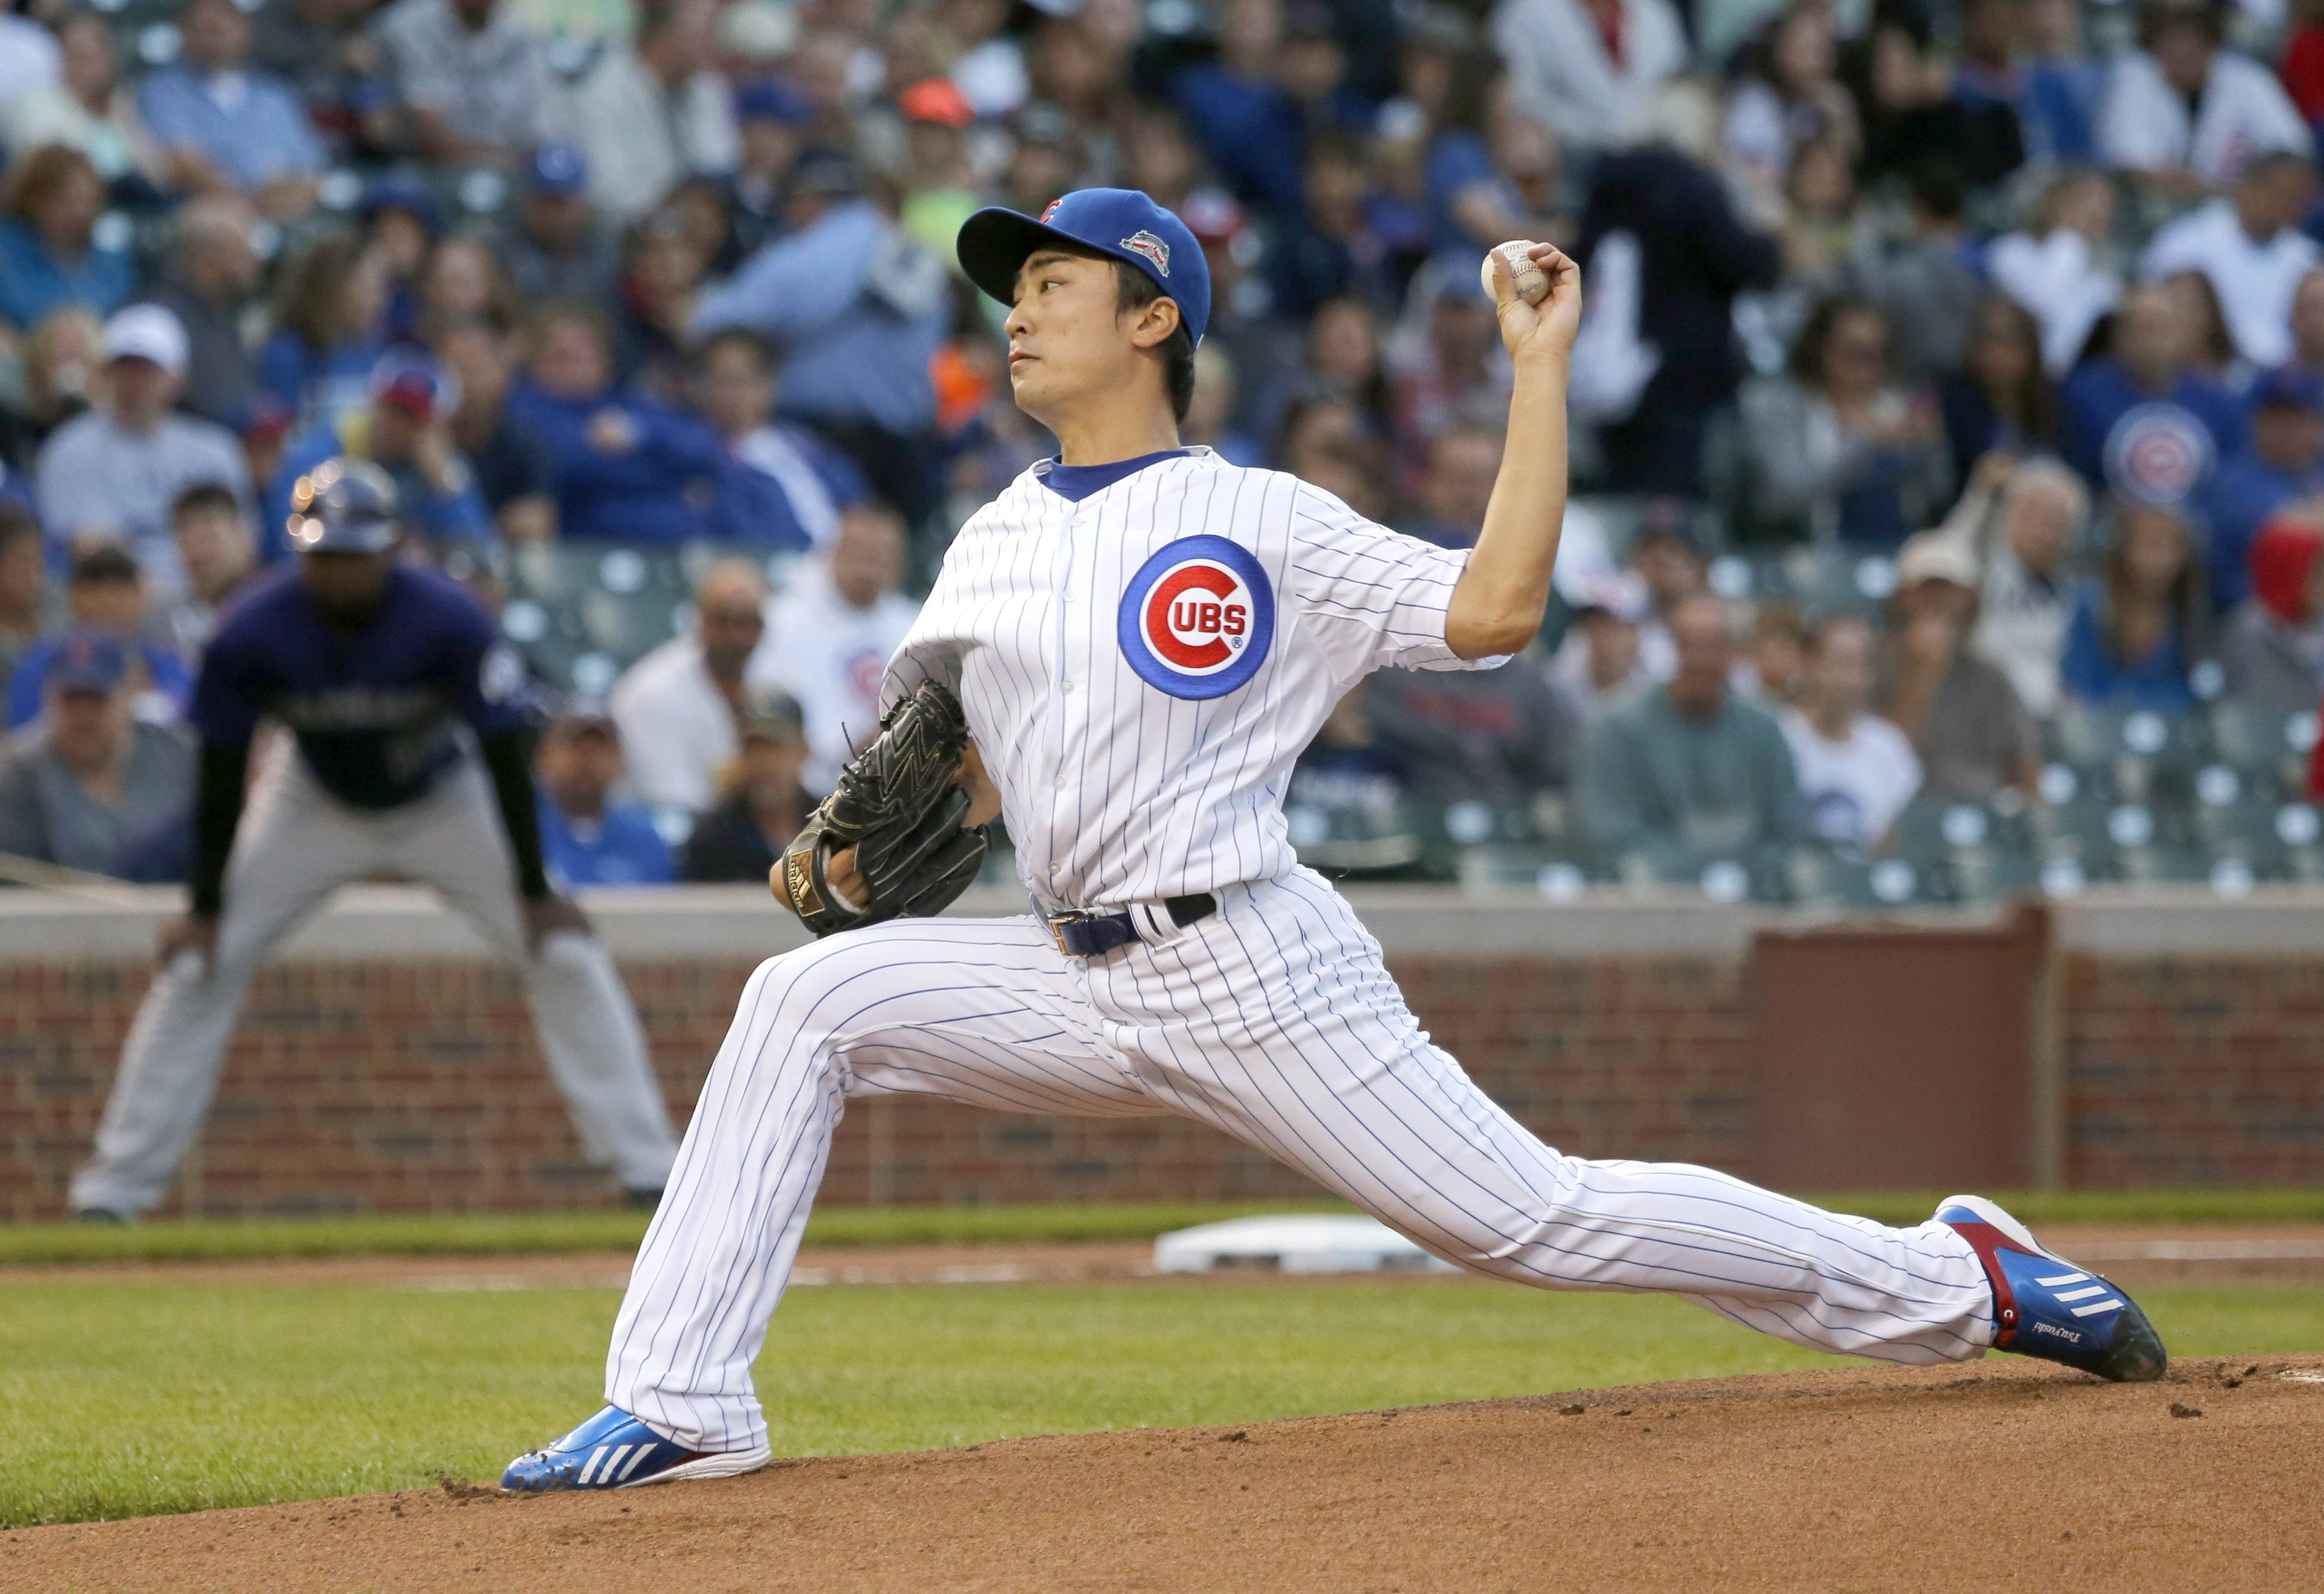 Cubs starting pitcher Tsuyoshi Wada earned his first major-league win Monday night, stopping the Rockies on 5 hits over 7 innings.